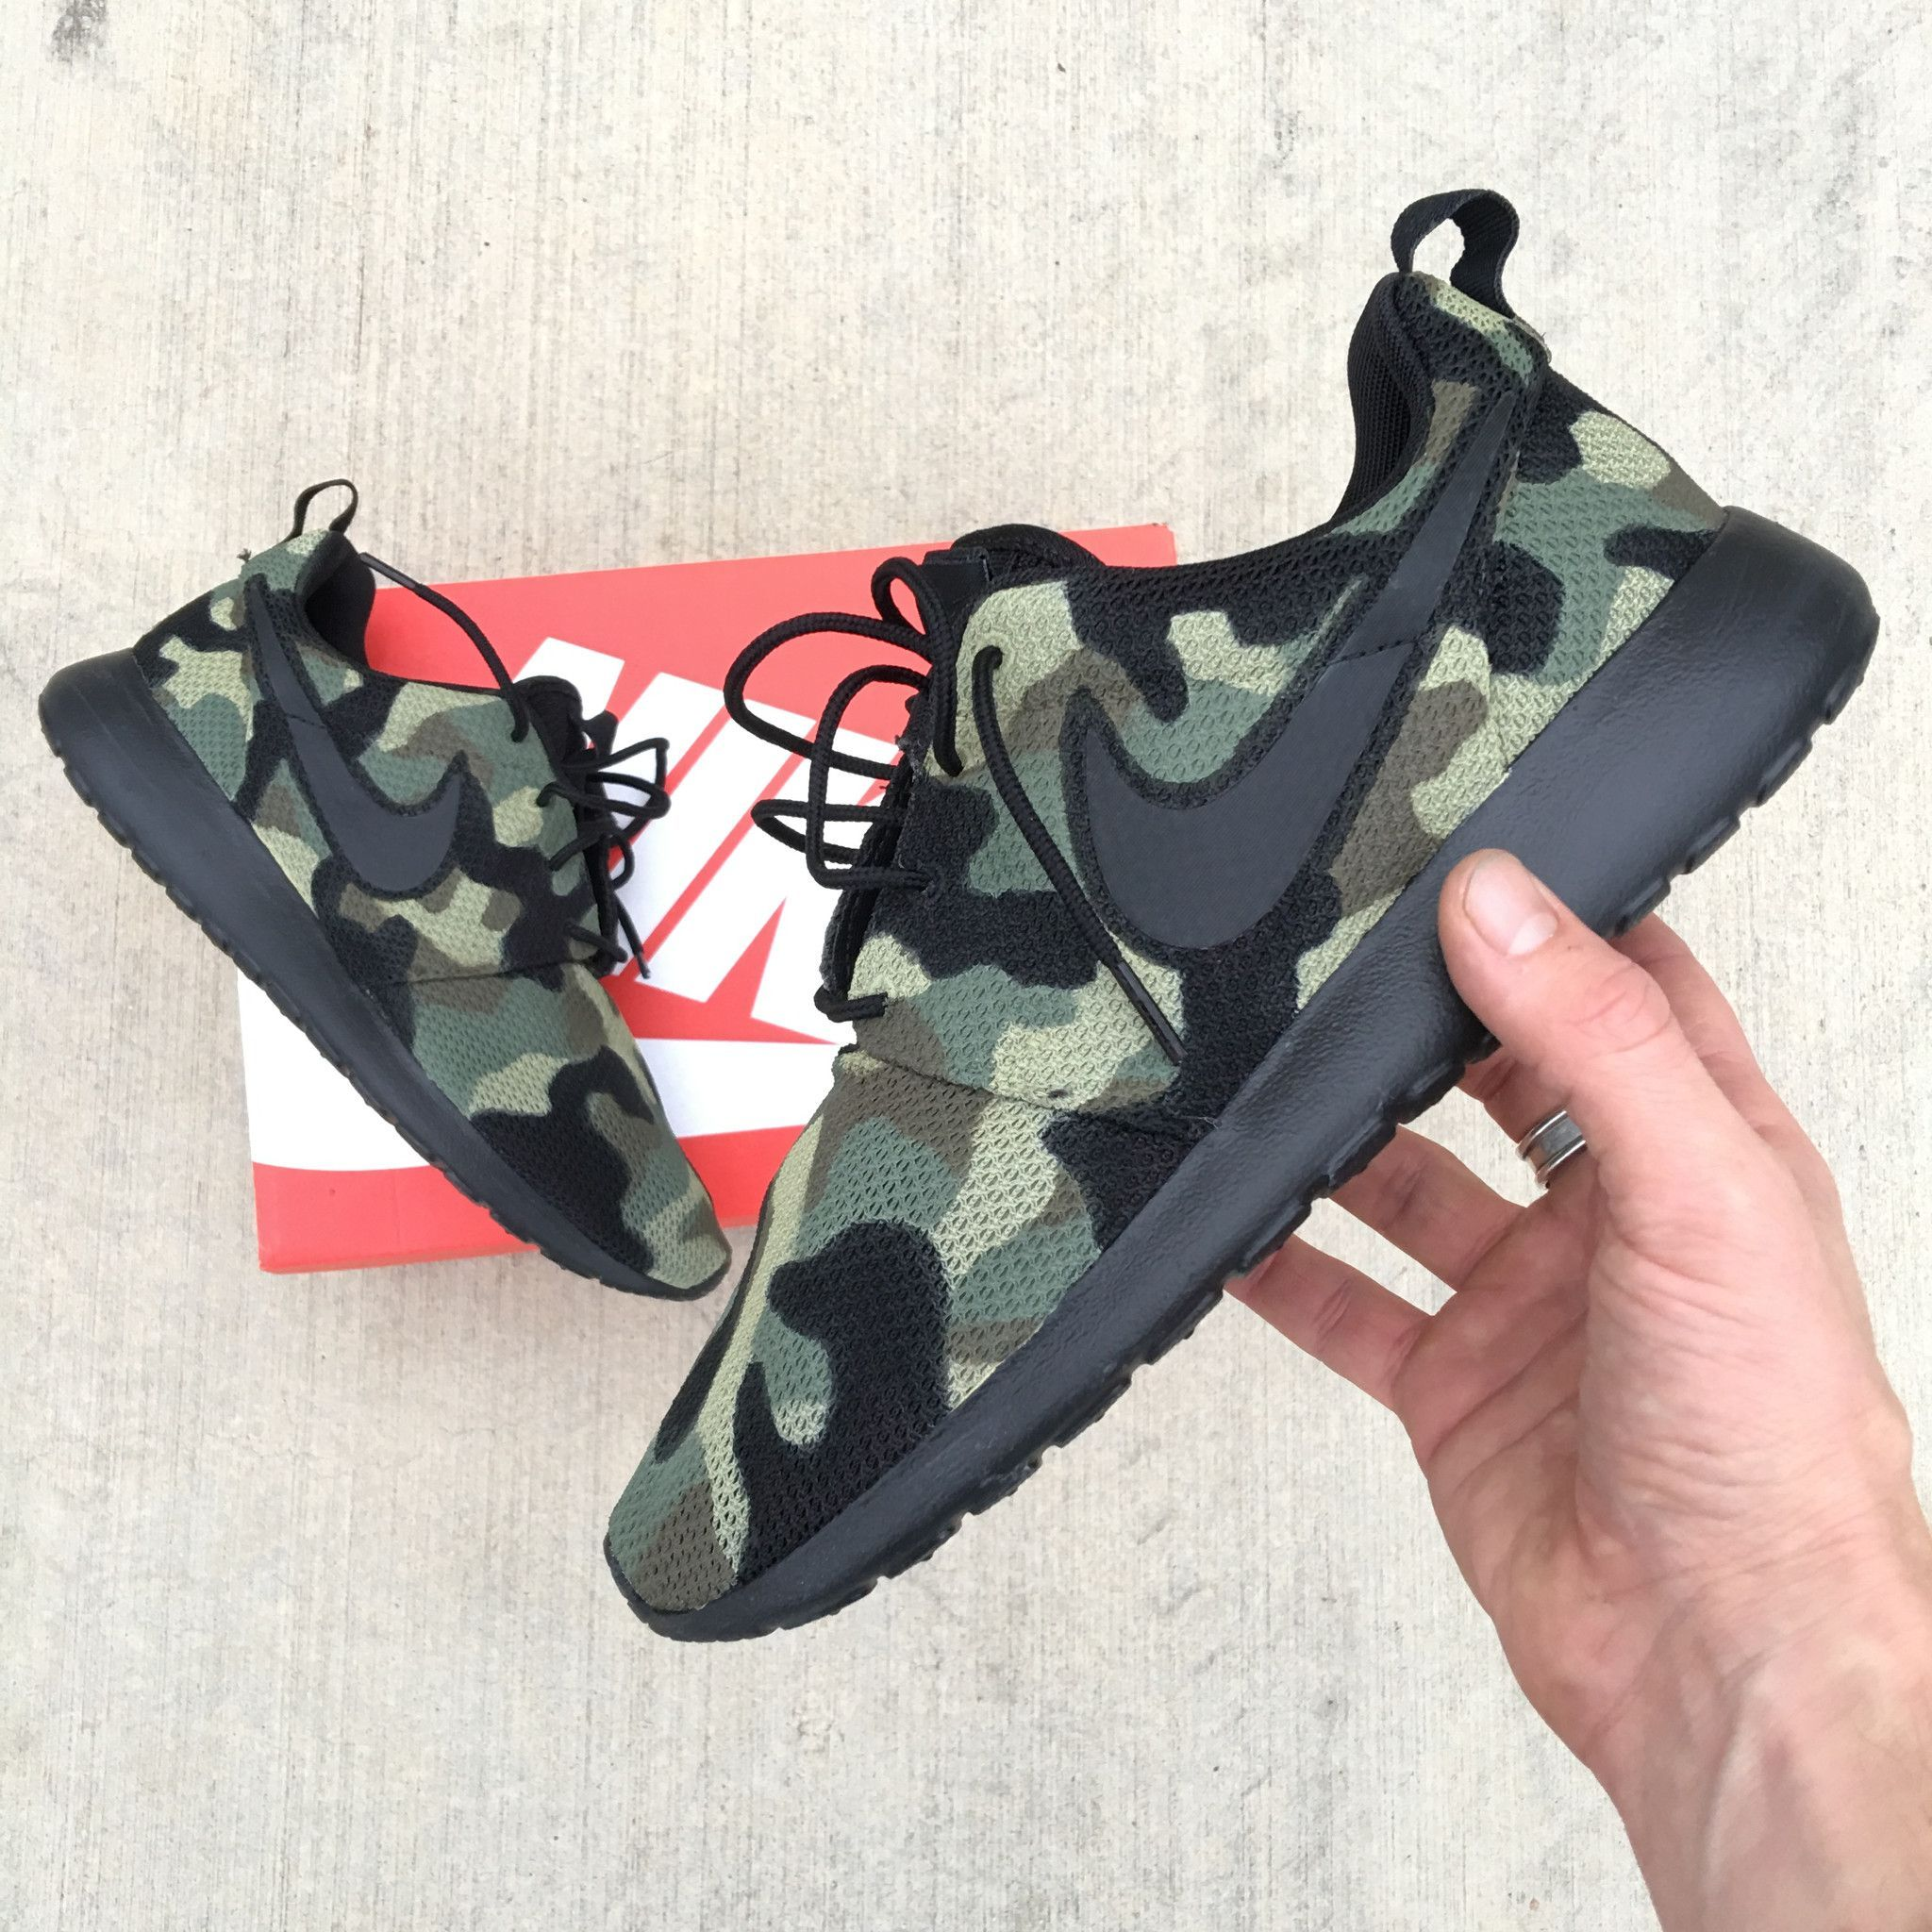 62c839b116f3 Custom painted Nike Roshe One. Camo. These shoes feature the black sole.  Paint is 100% permanent and will never come off. Price includes shoes    artwork.